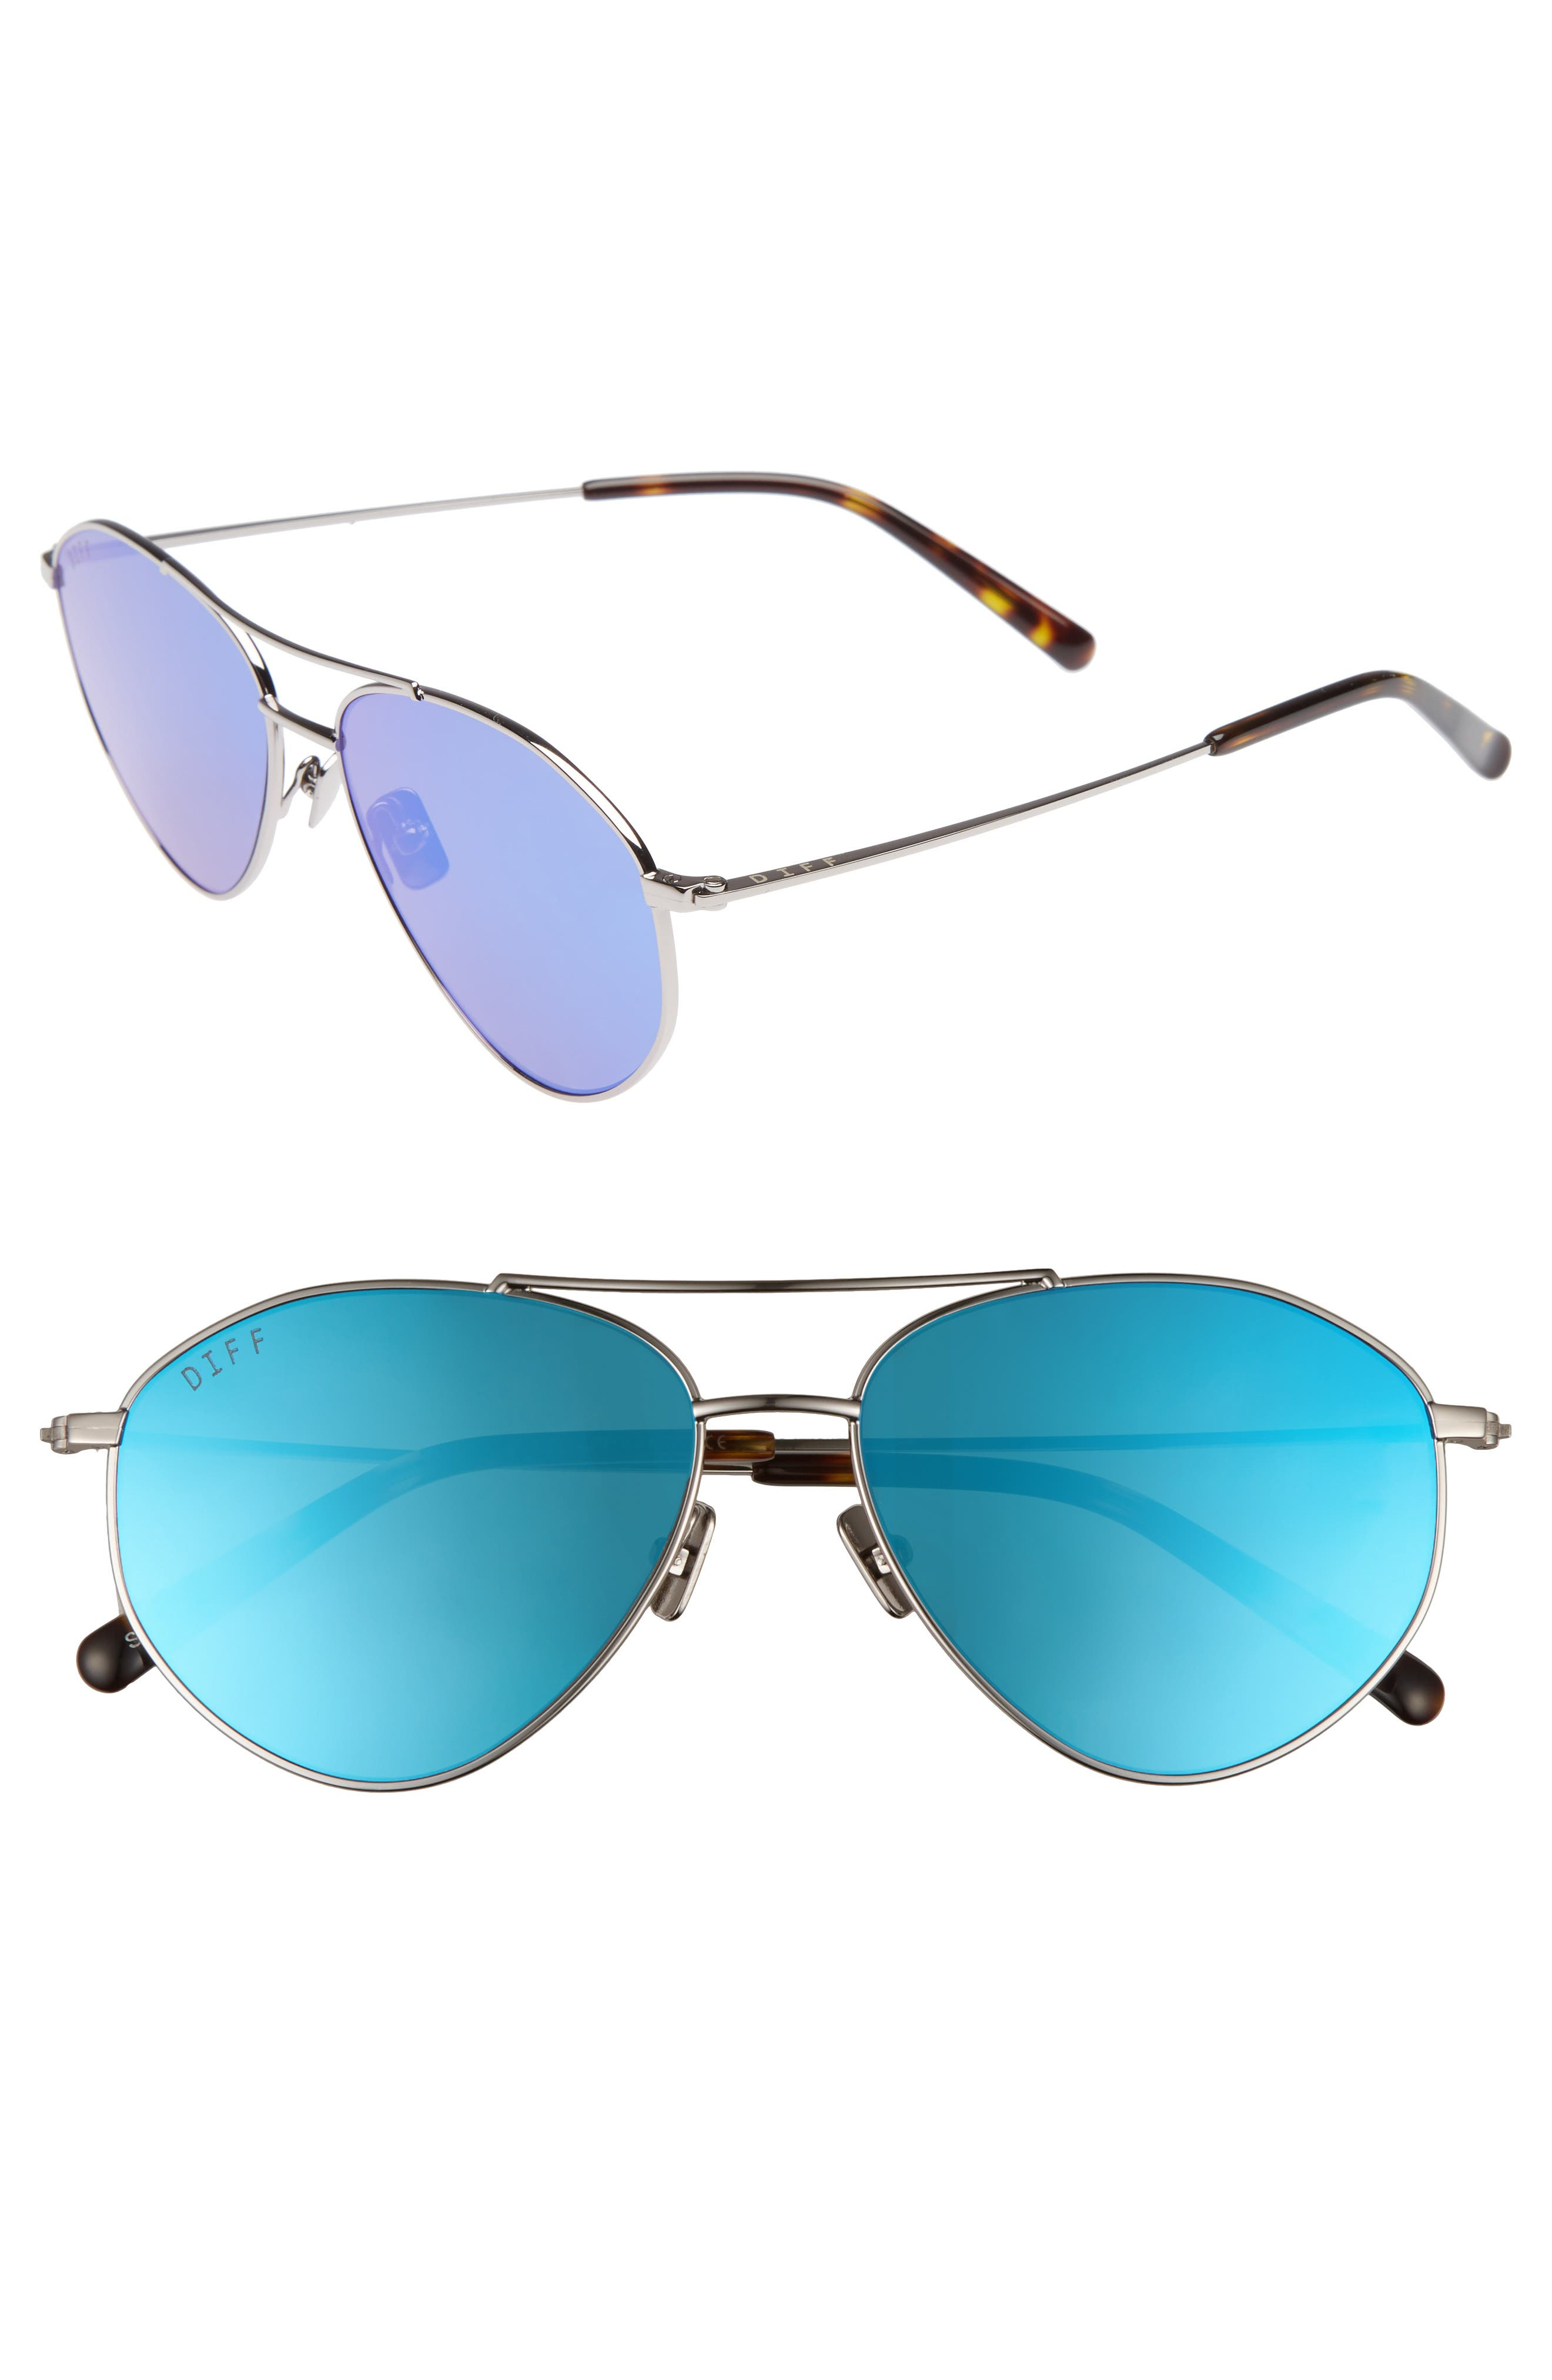 Scout 53mm Aviator Sunglasses,                             Main thumbnail 1, color,                             LIGHT GUNMETAL/ ICE BLUE